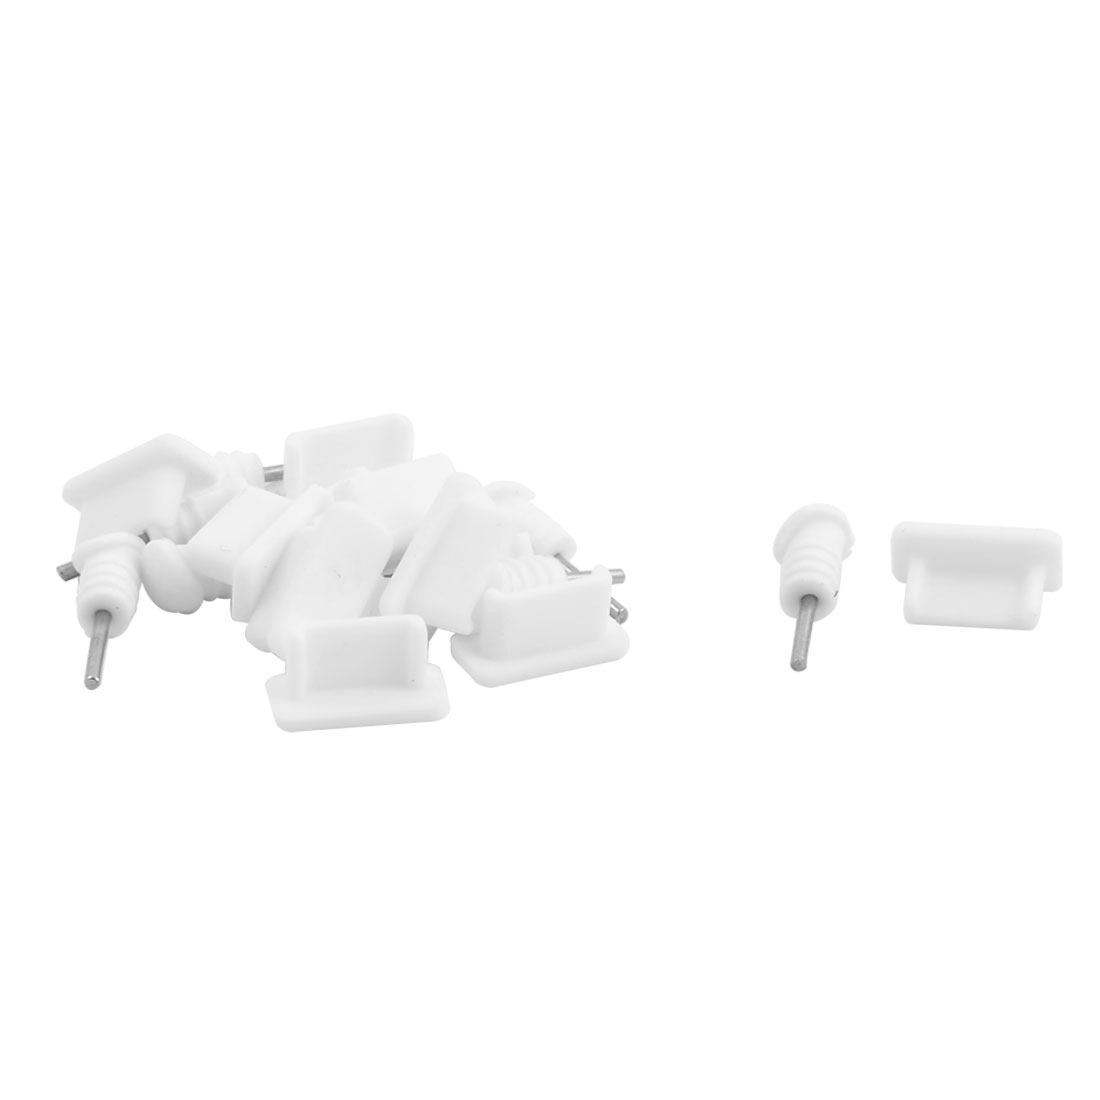 3.5mm Earphone Charge Port Dock Anti Dust Stopper White 10 Set for Type C Phone